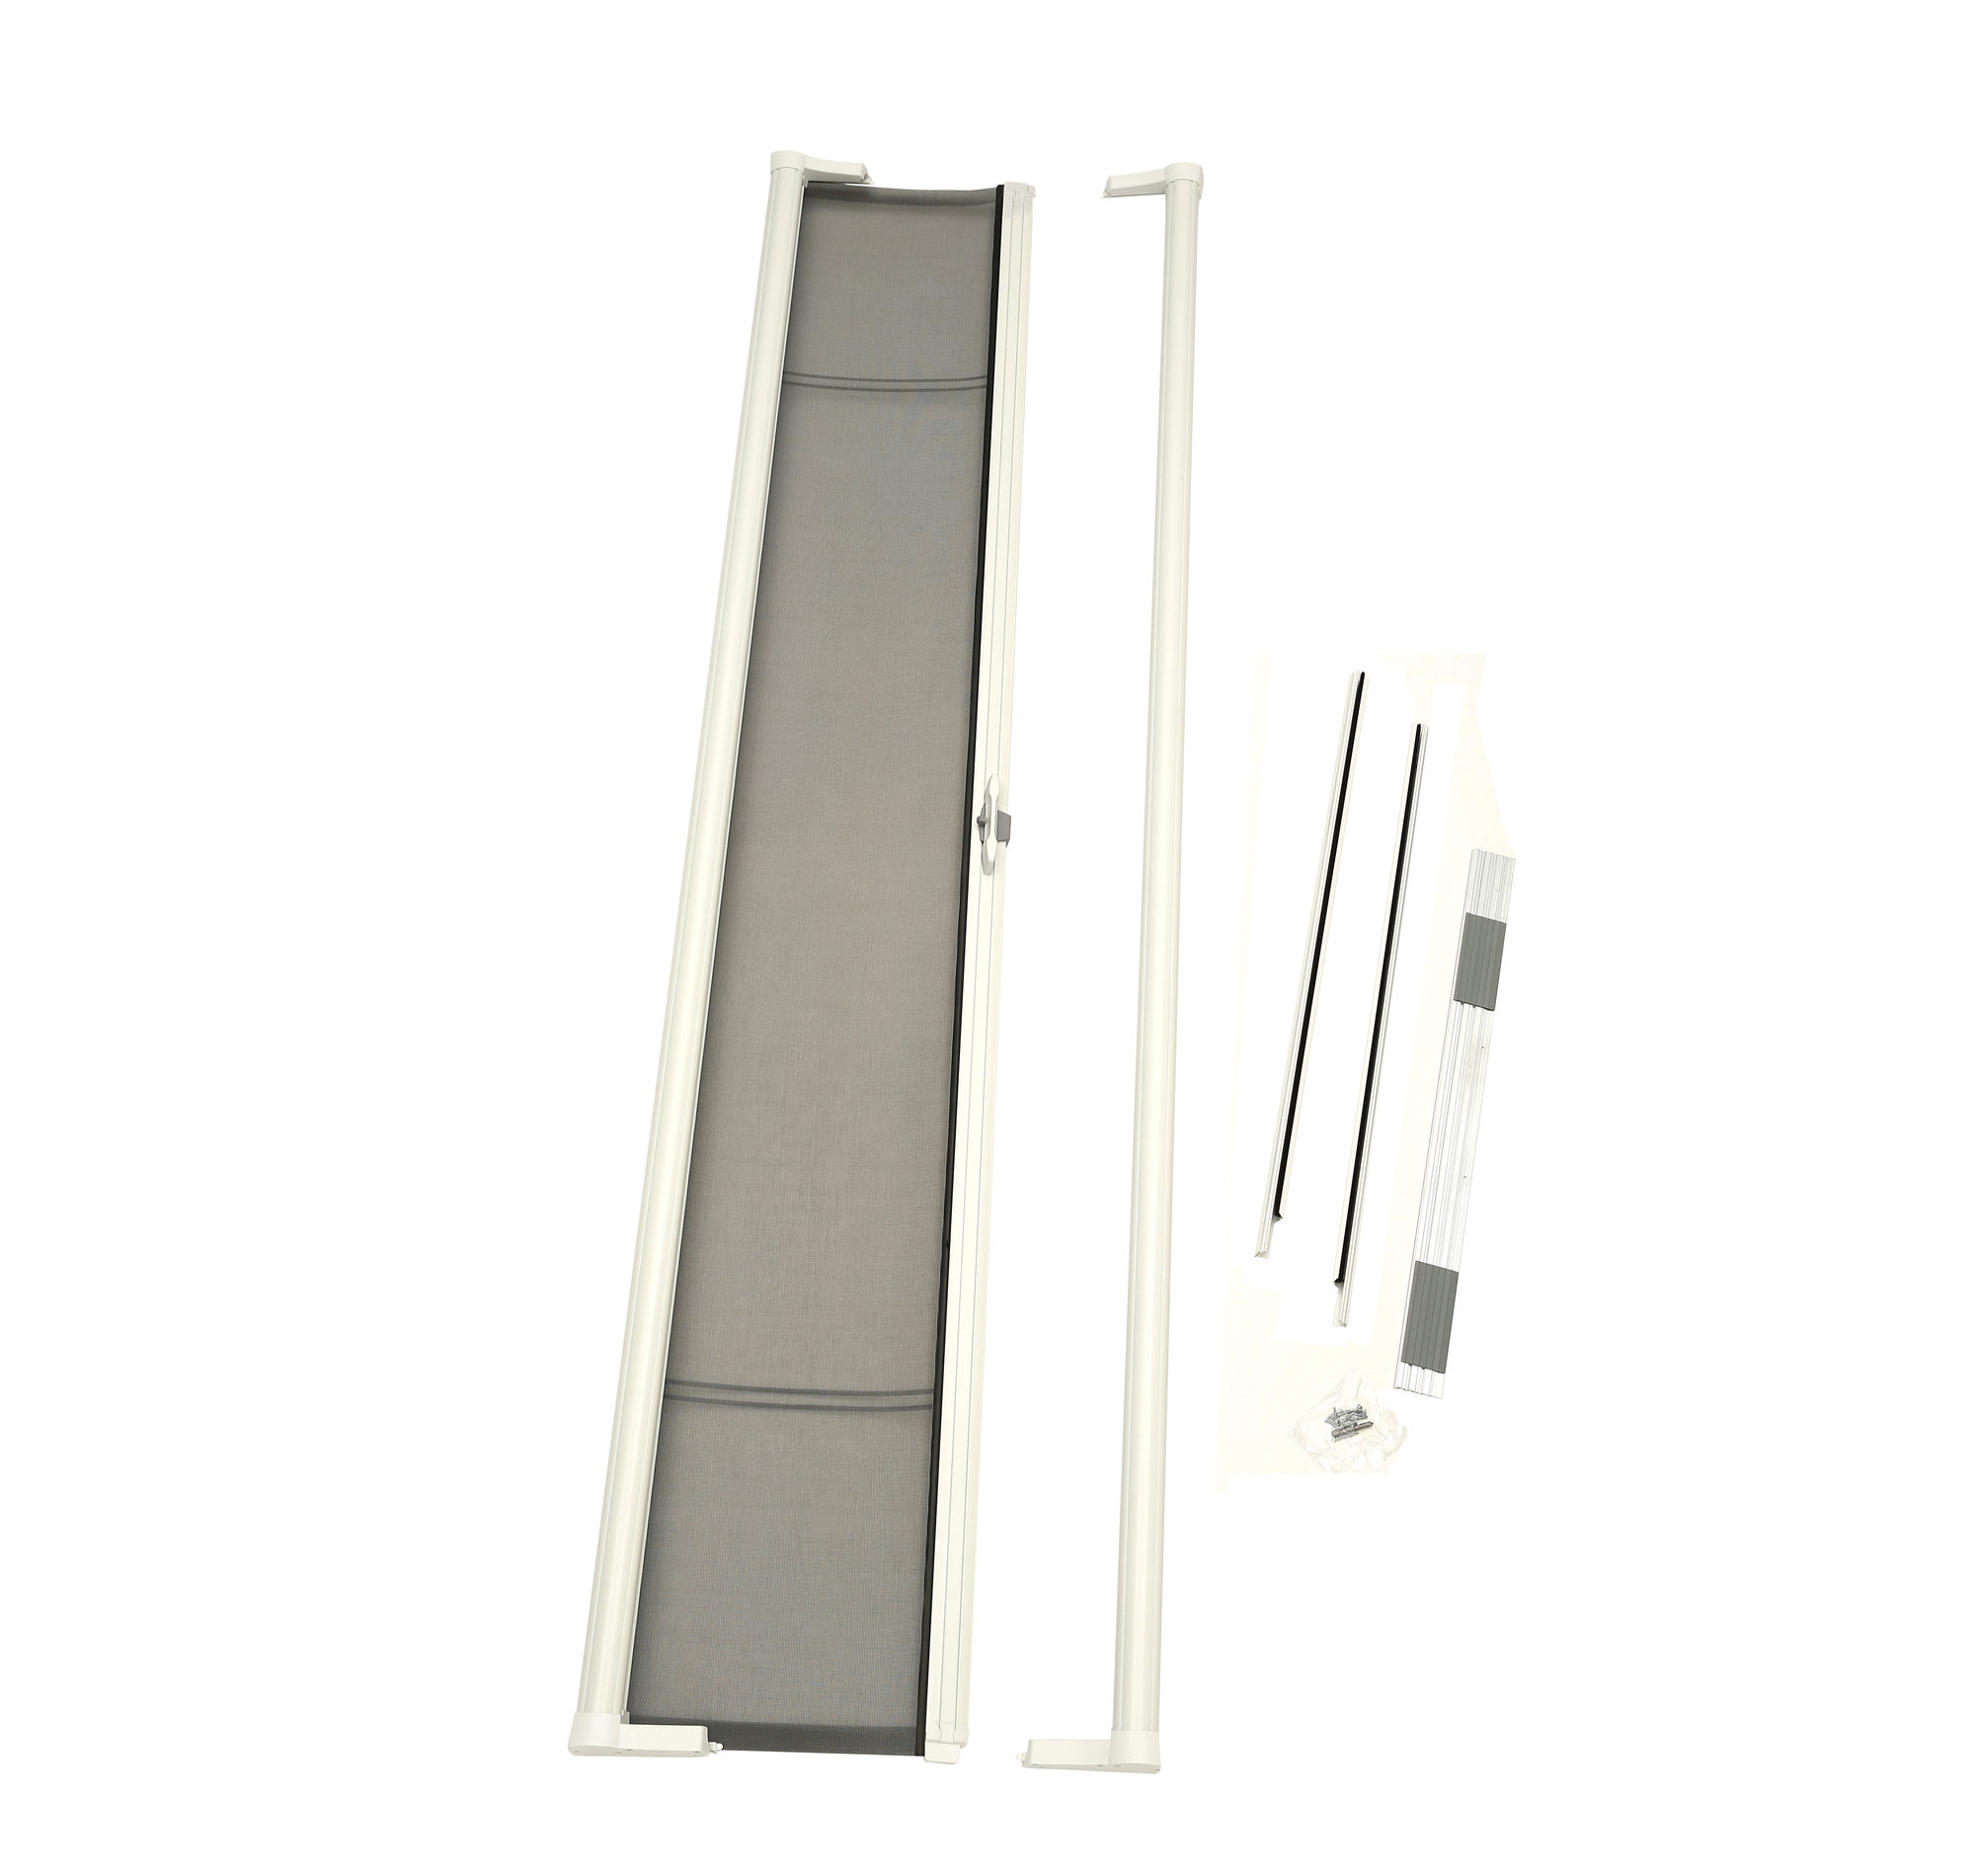 Buy Doors Online Product Detail Online Hardware Store One Stop Place For Home